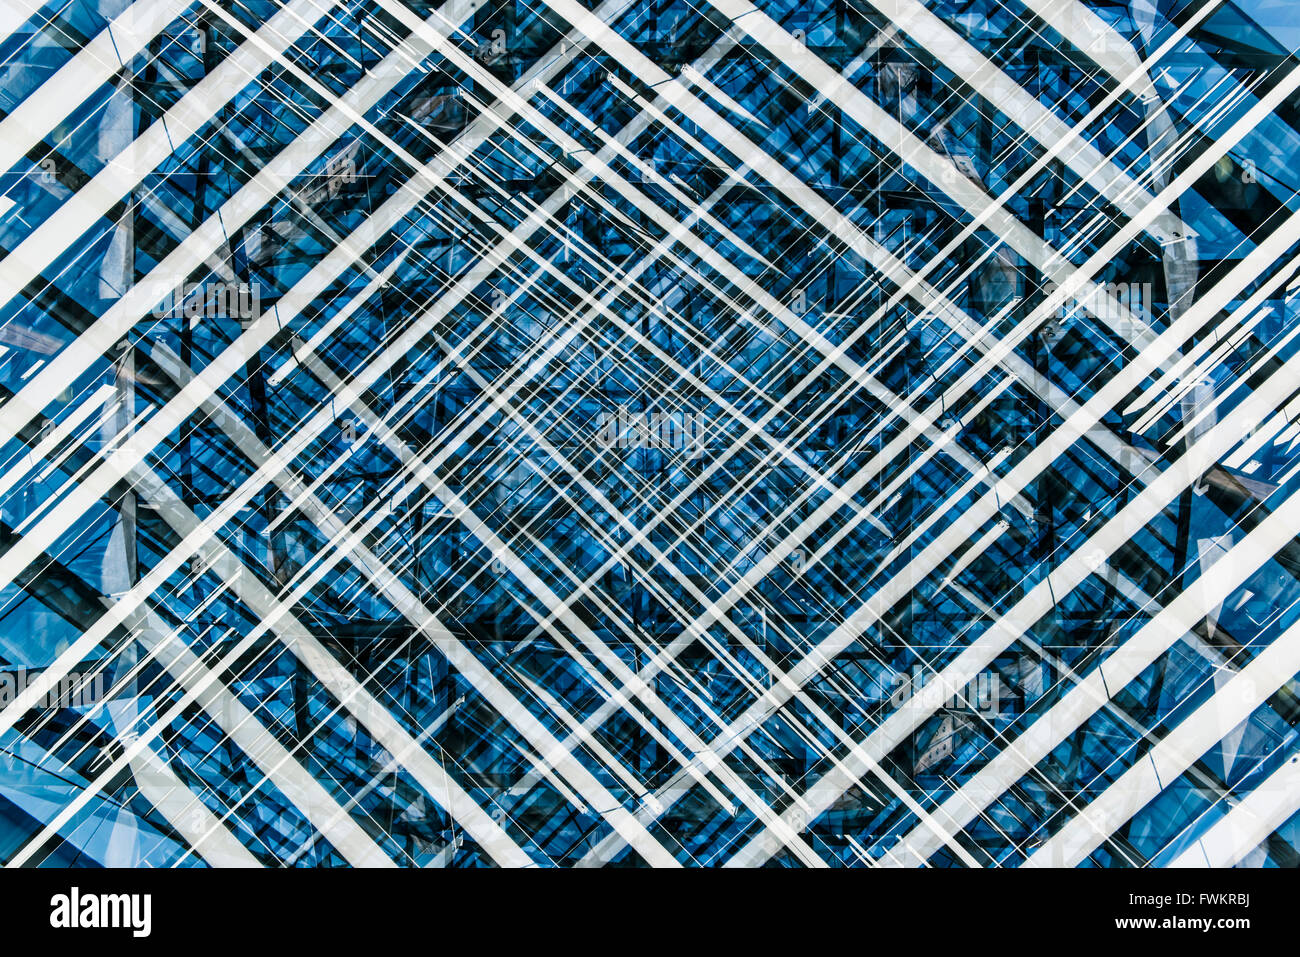 Blue, Black and White abstract pattern created using multiple exposures of an architectural detail. - Stock Image